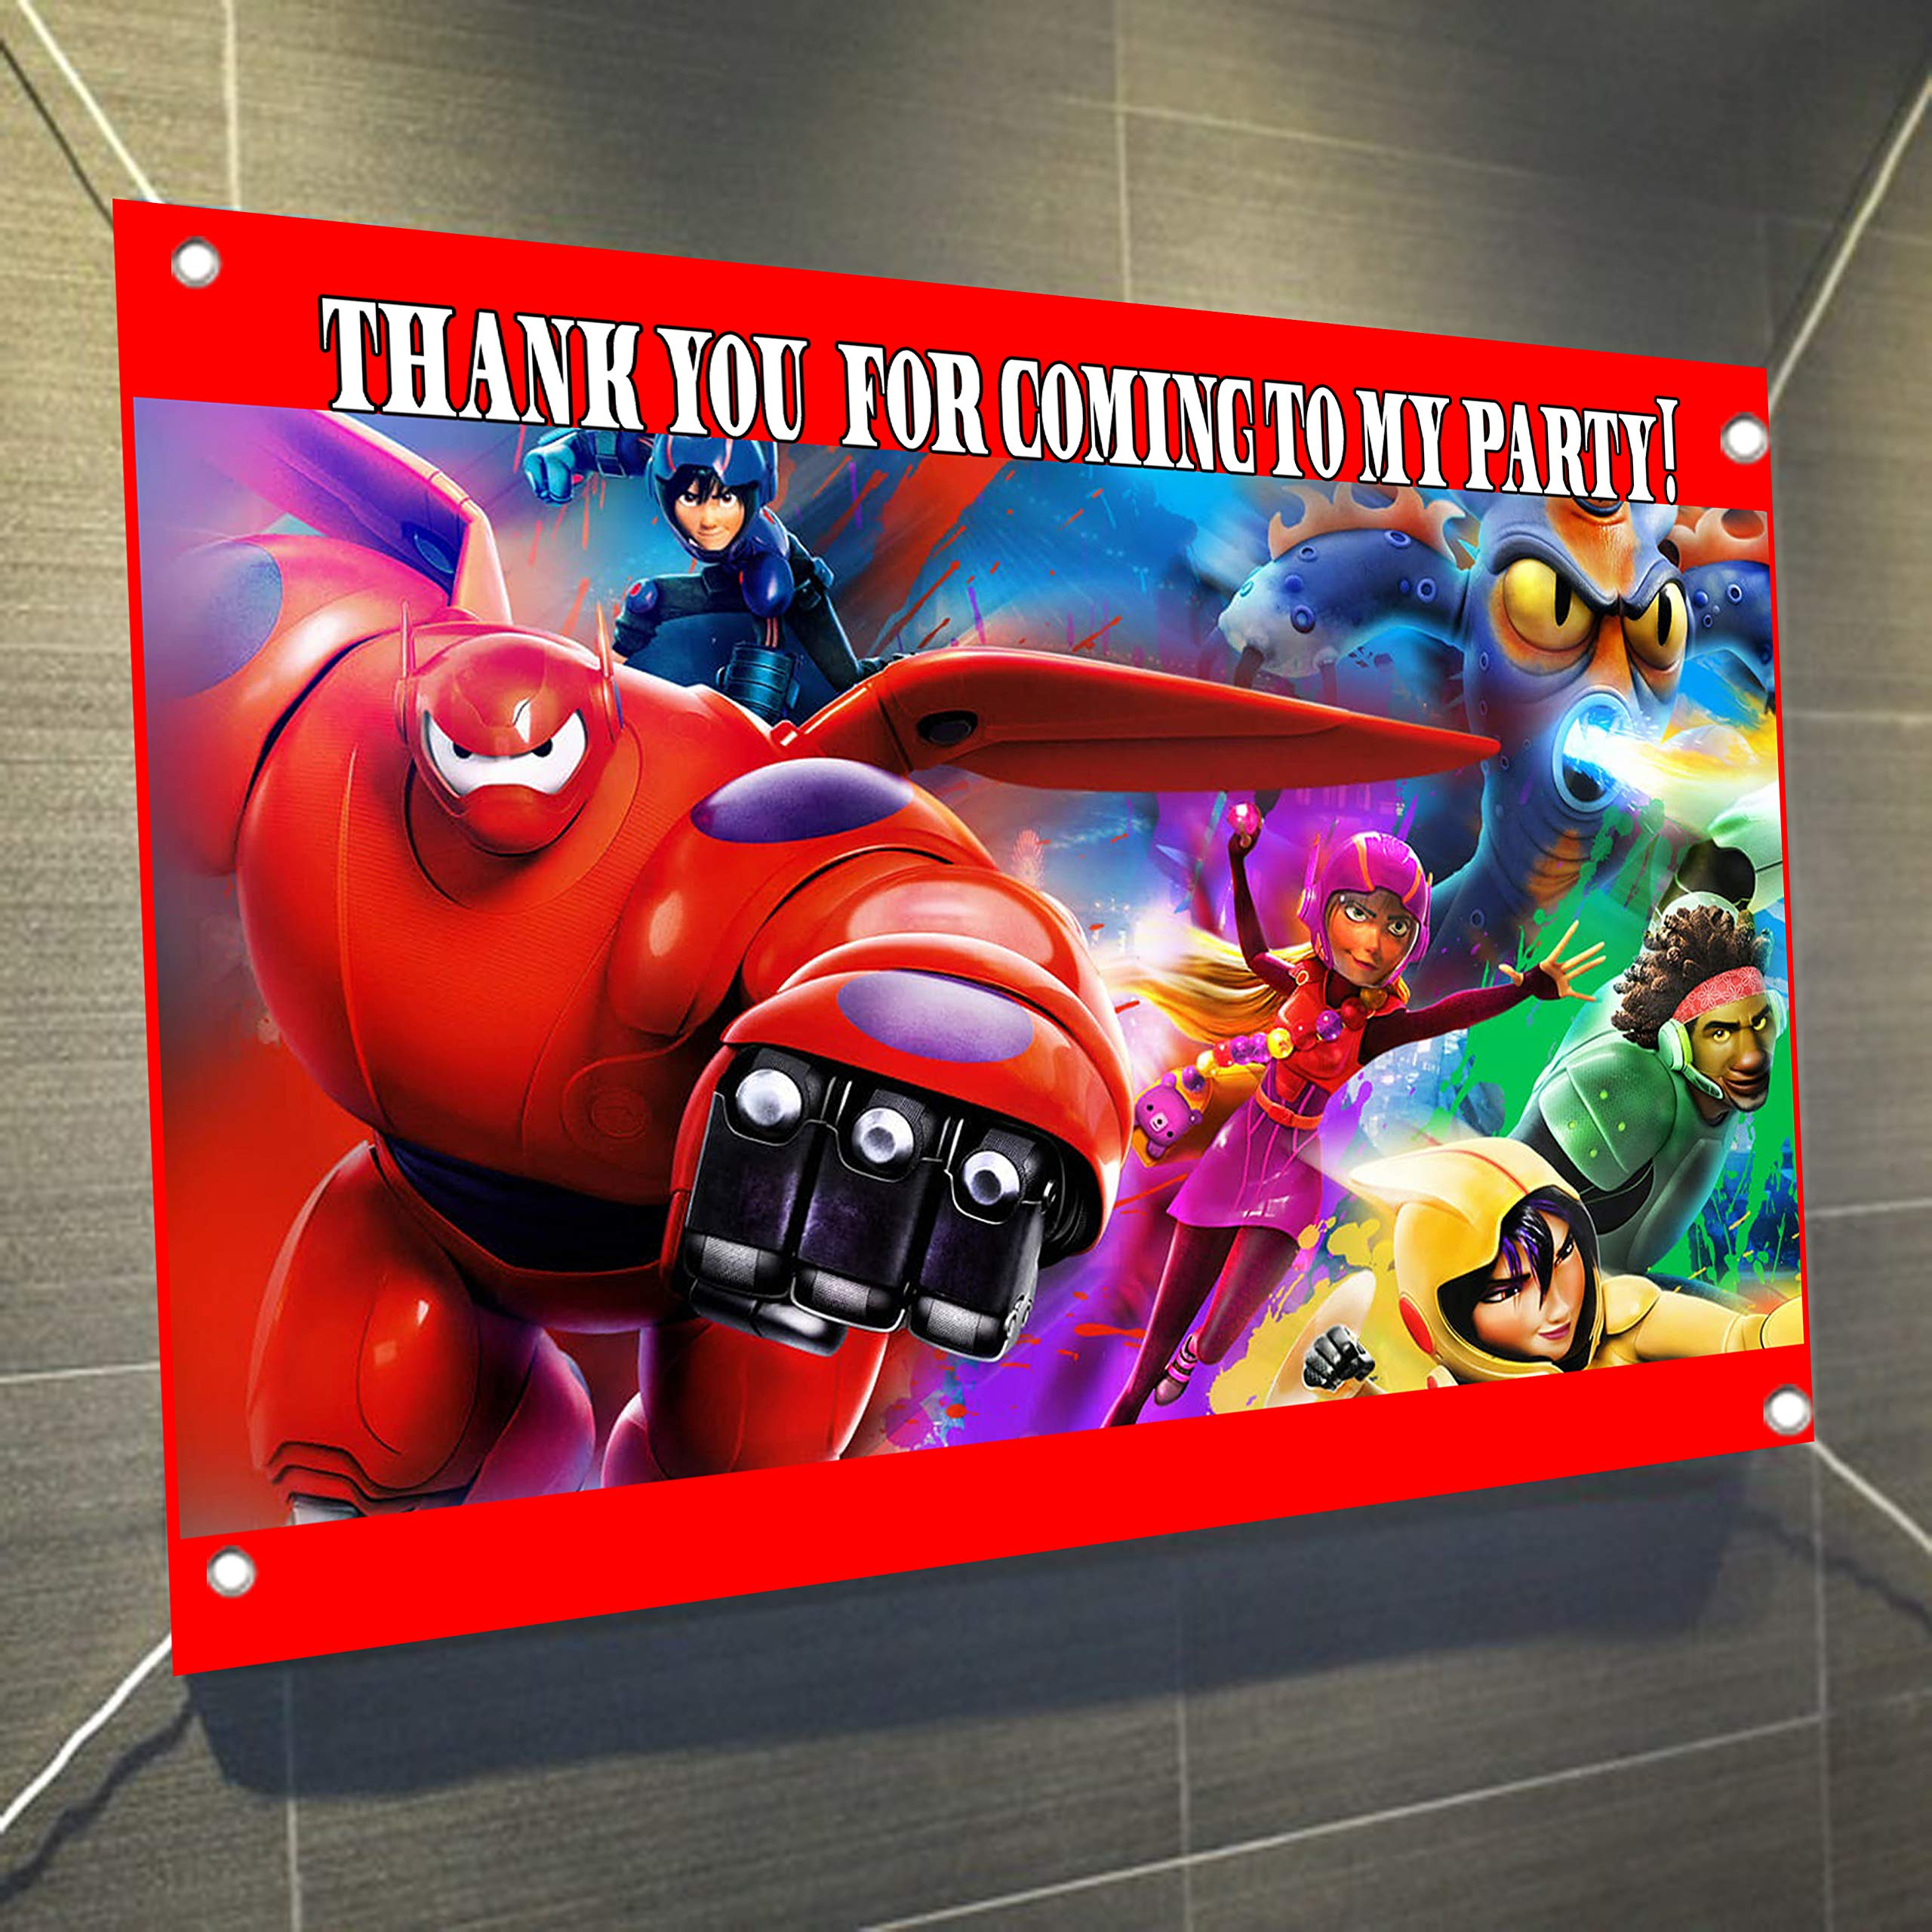 Big Hero 6 Large Vinyl Indoor or Outdoor Banner Sign Poster Backdrop Decoration, Baymax, Waterproof, 30'' x 24'', 2.5' x 2'